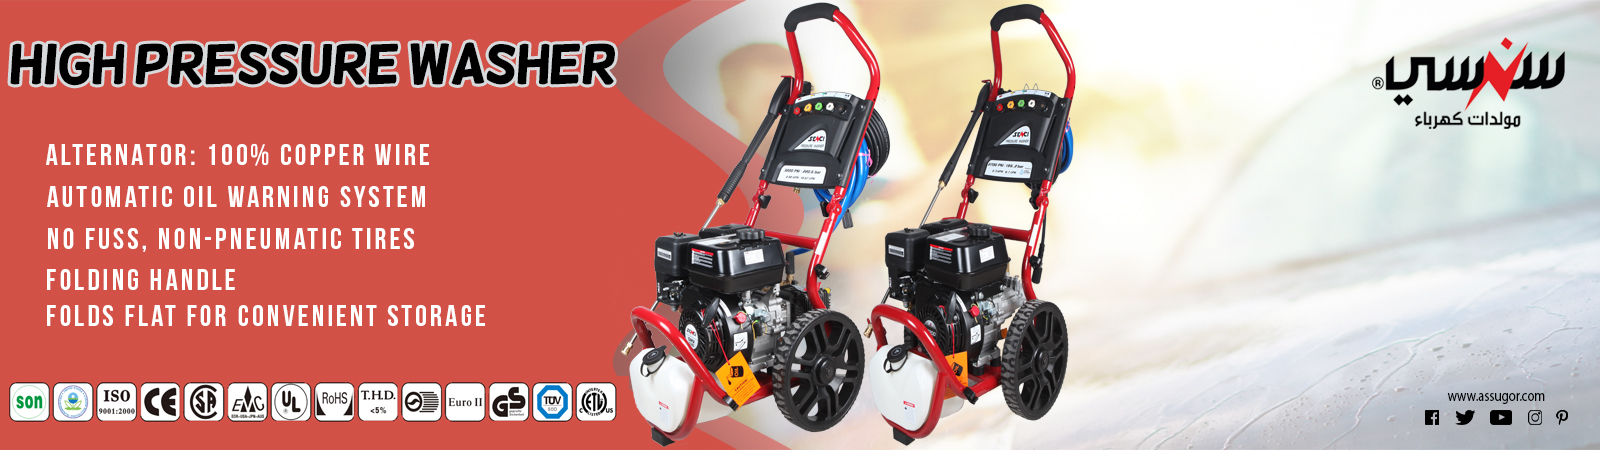 high pressure washer senci